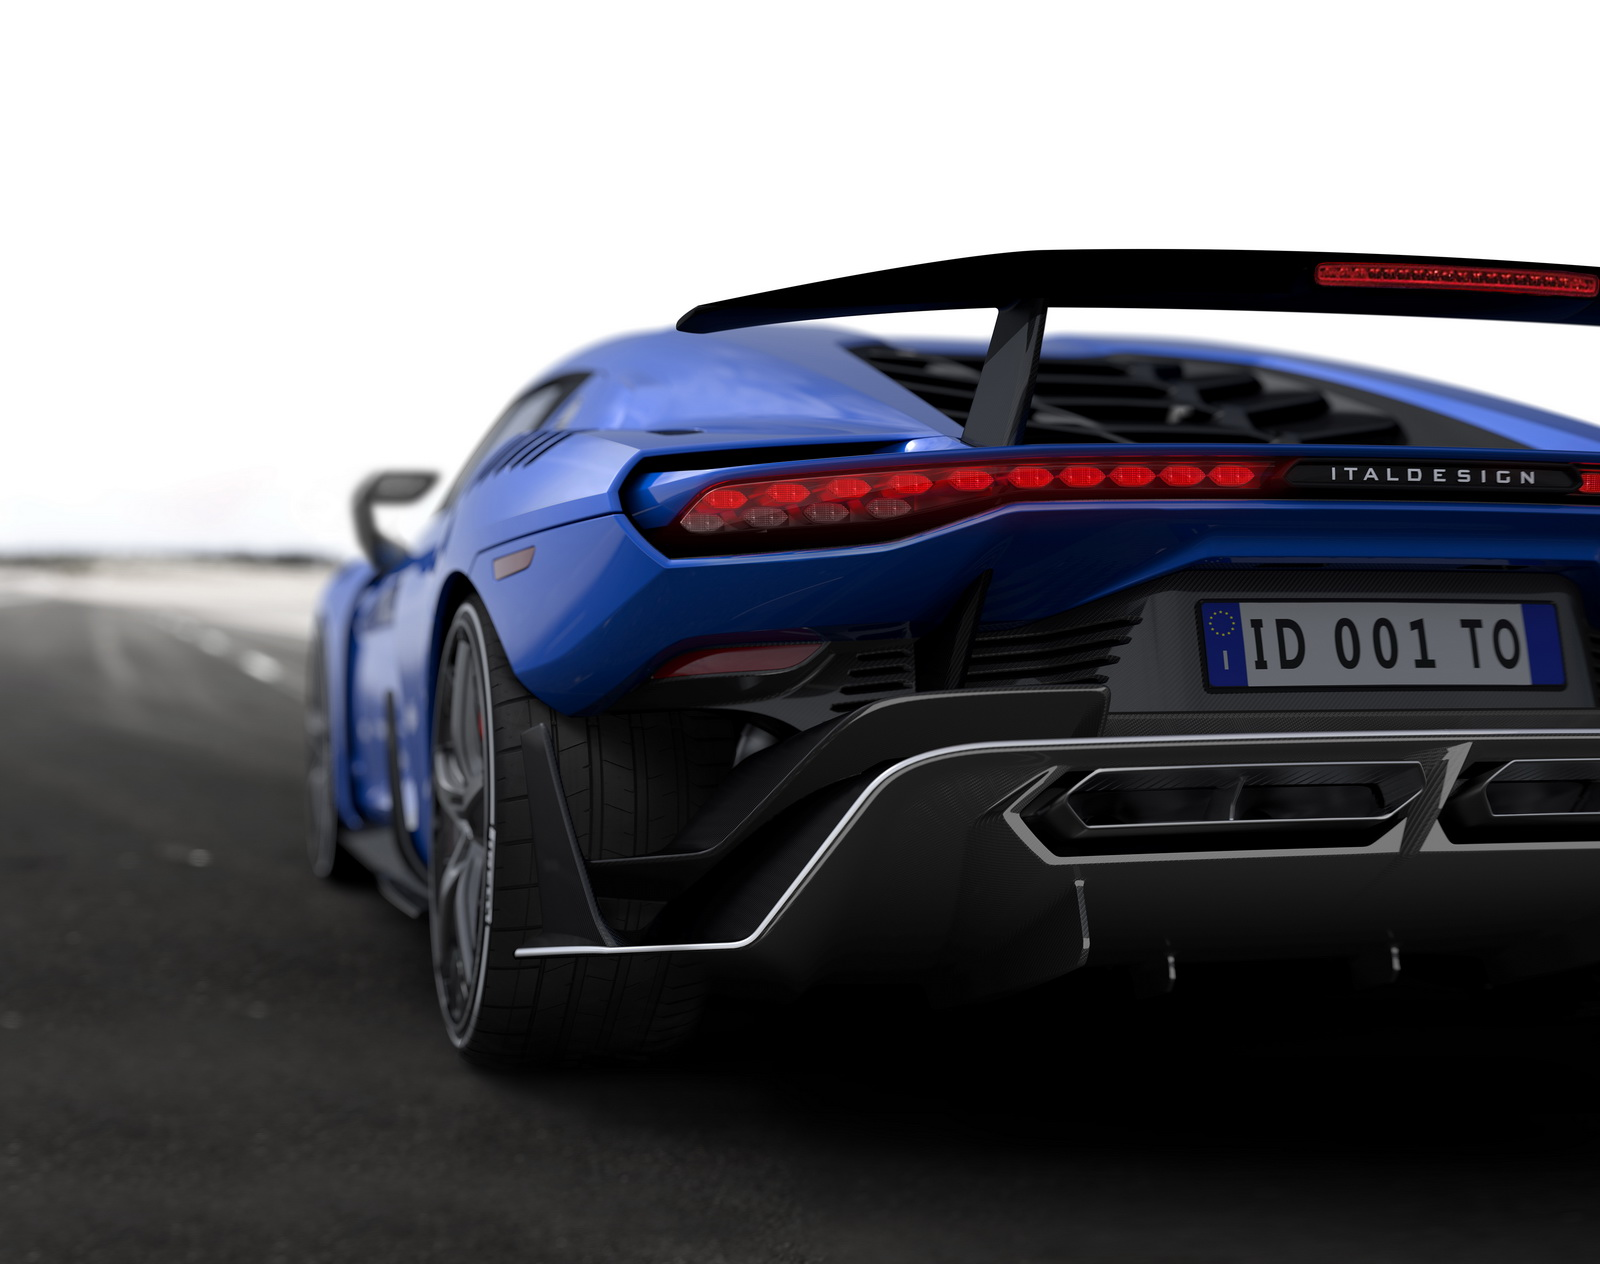 Italdesign Zerouno (21)